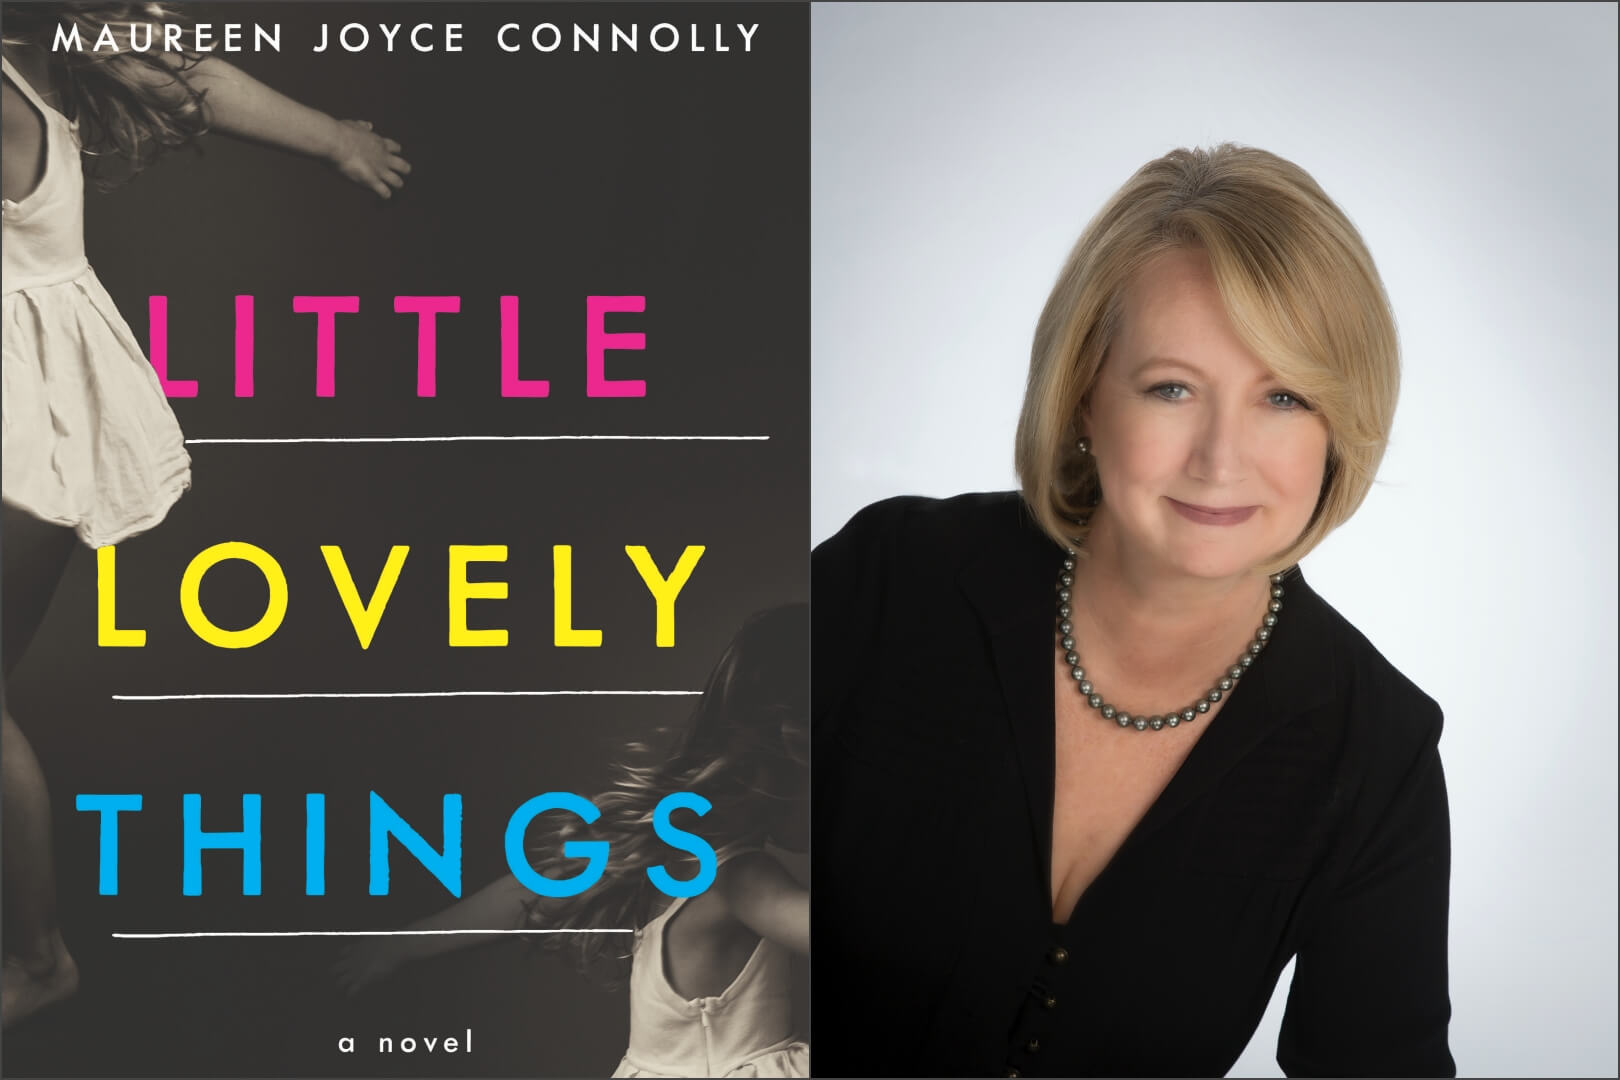 Maureen Joyce Connolly interview - book club chat